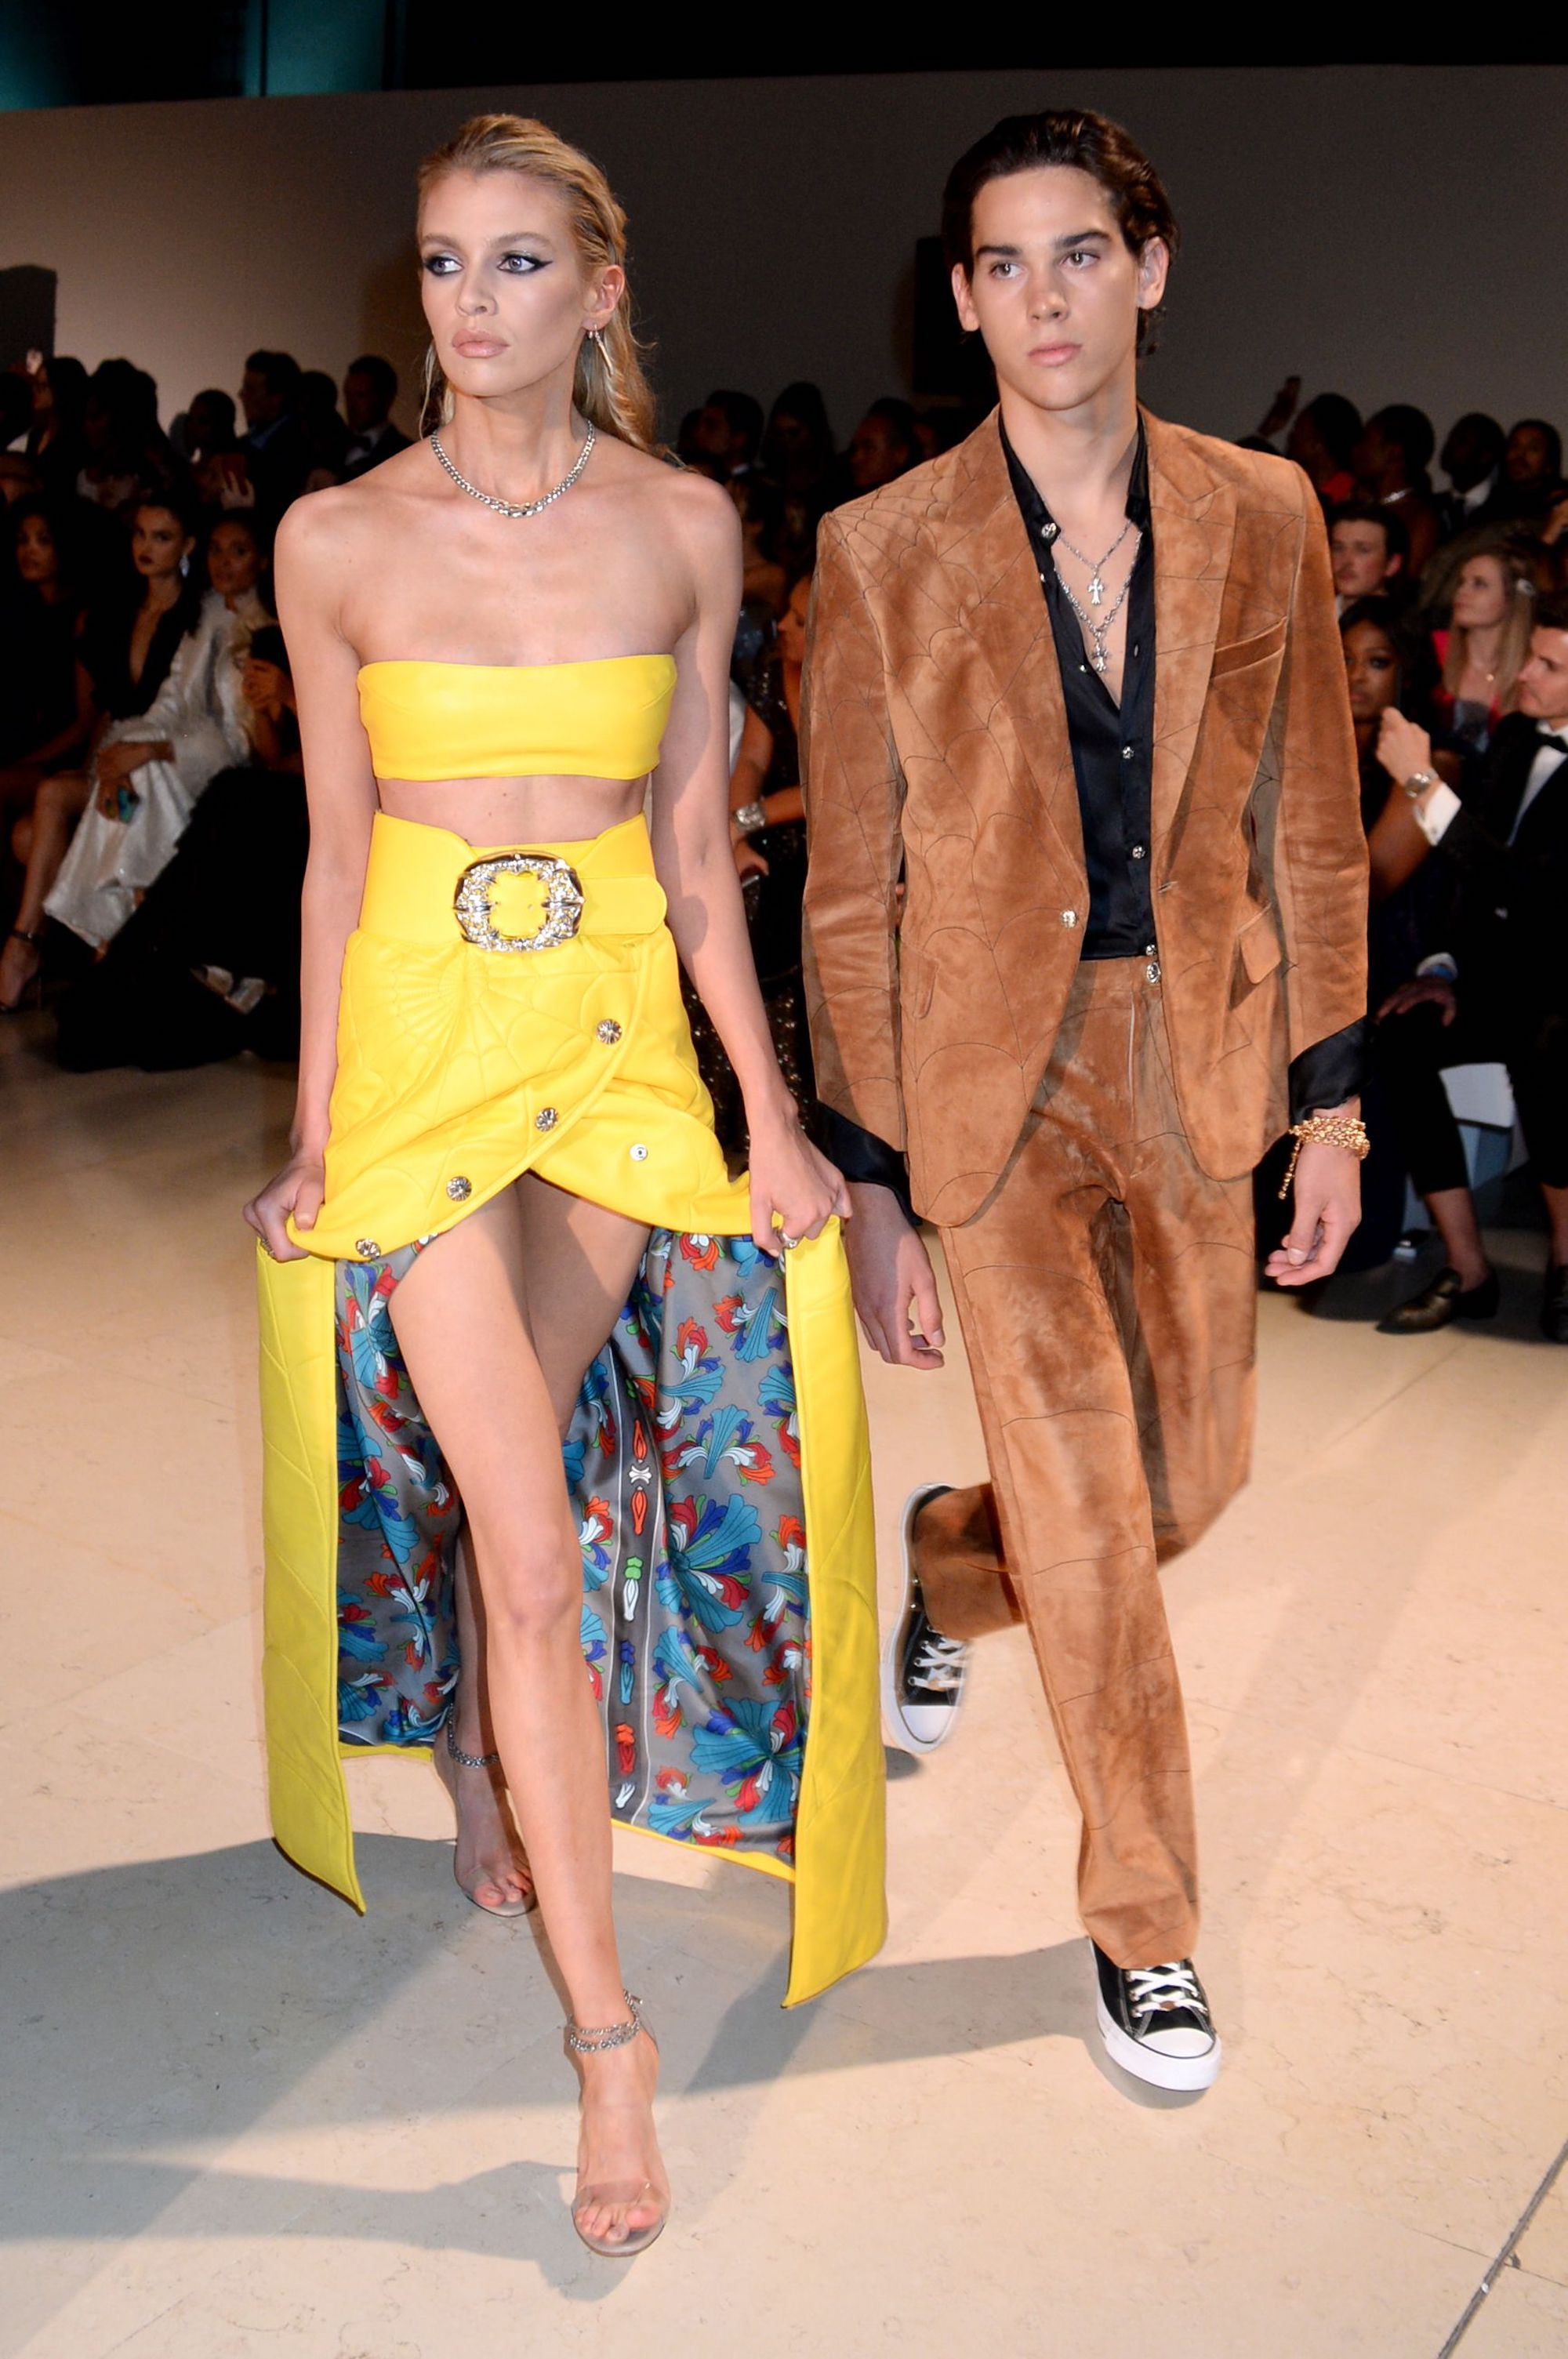 Stella Maxwell and Paris Brosnan wearing bespoke Chrome Hearts on the Fashion for Relief catwalk corner